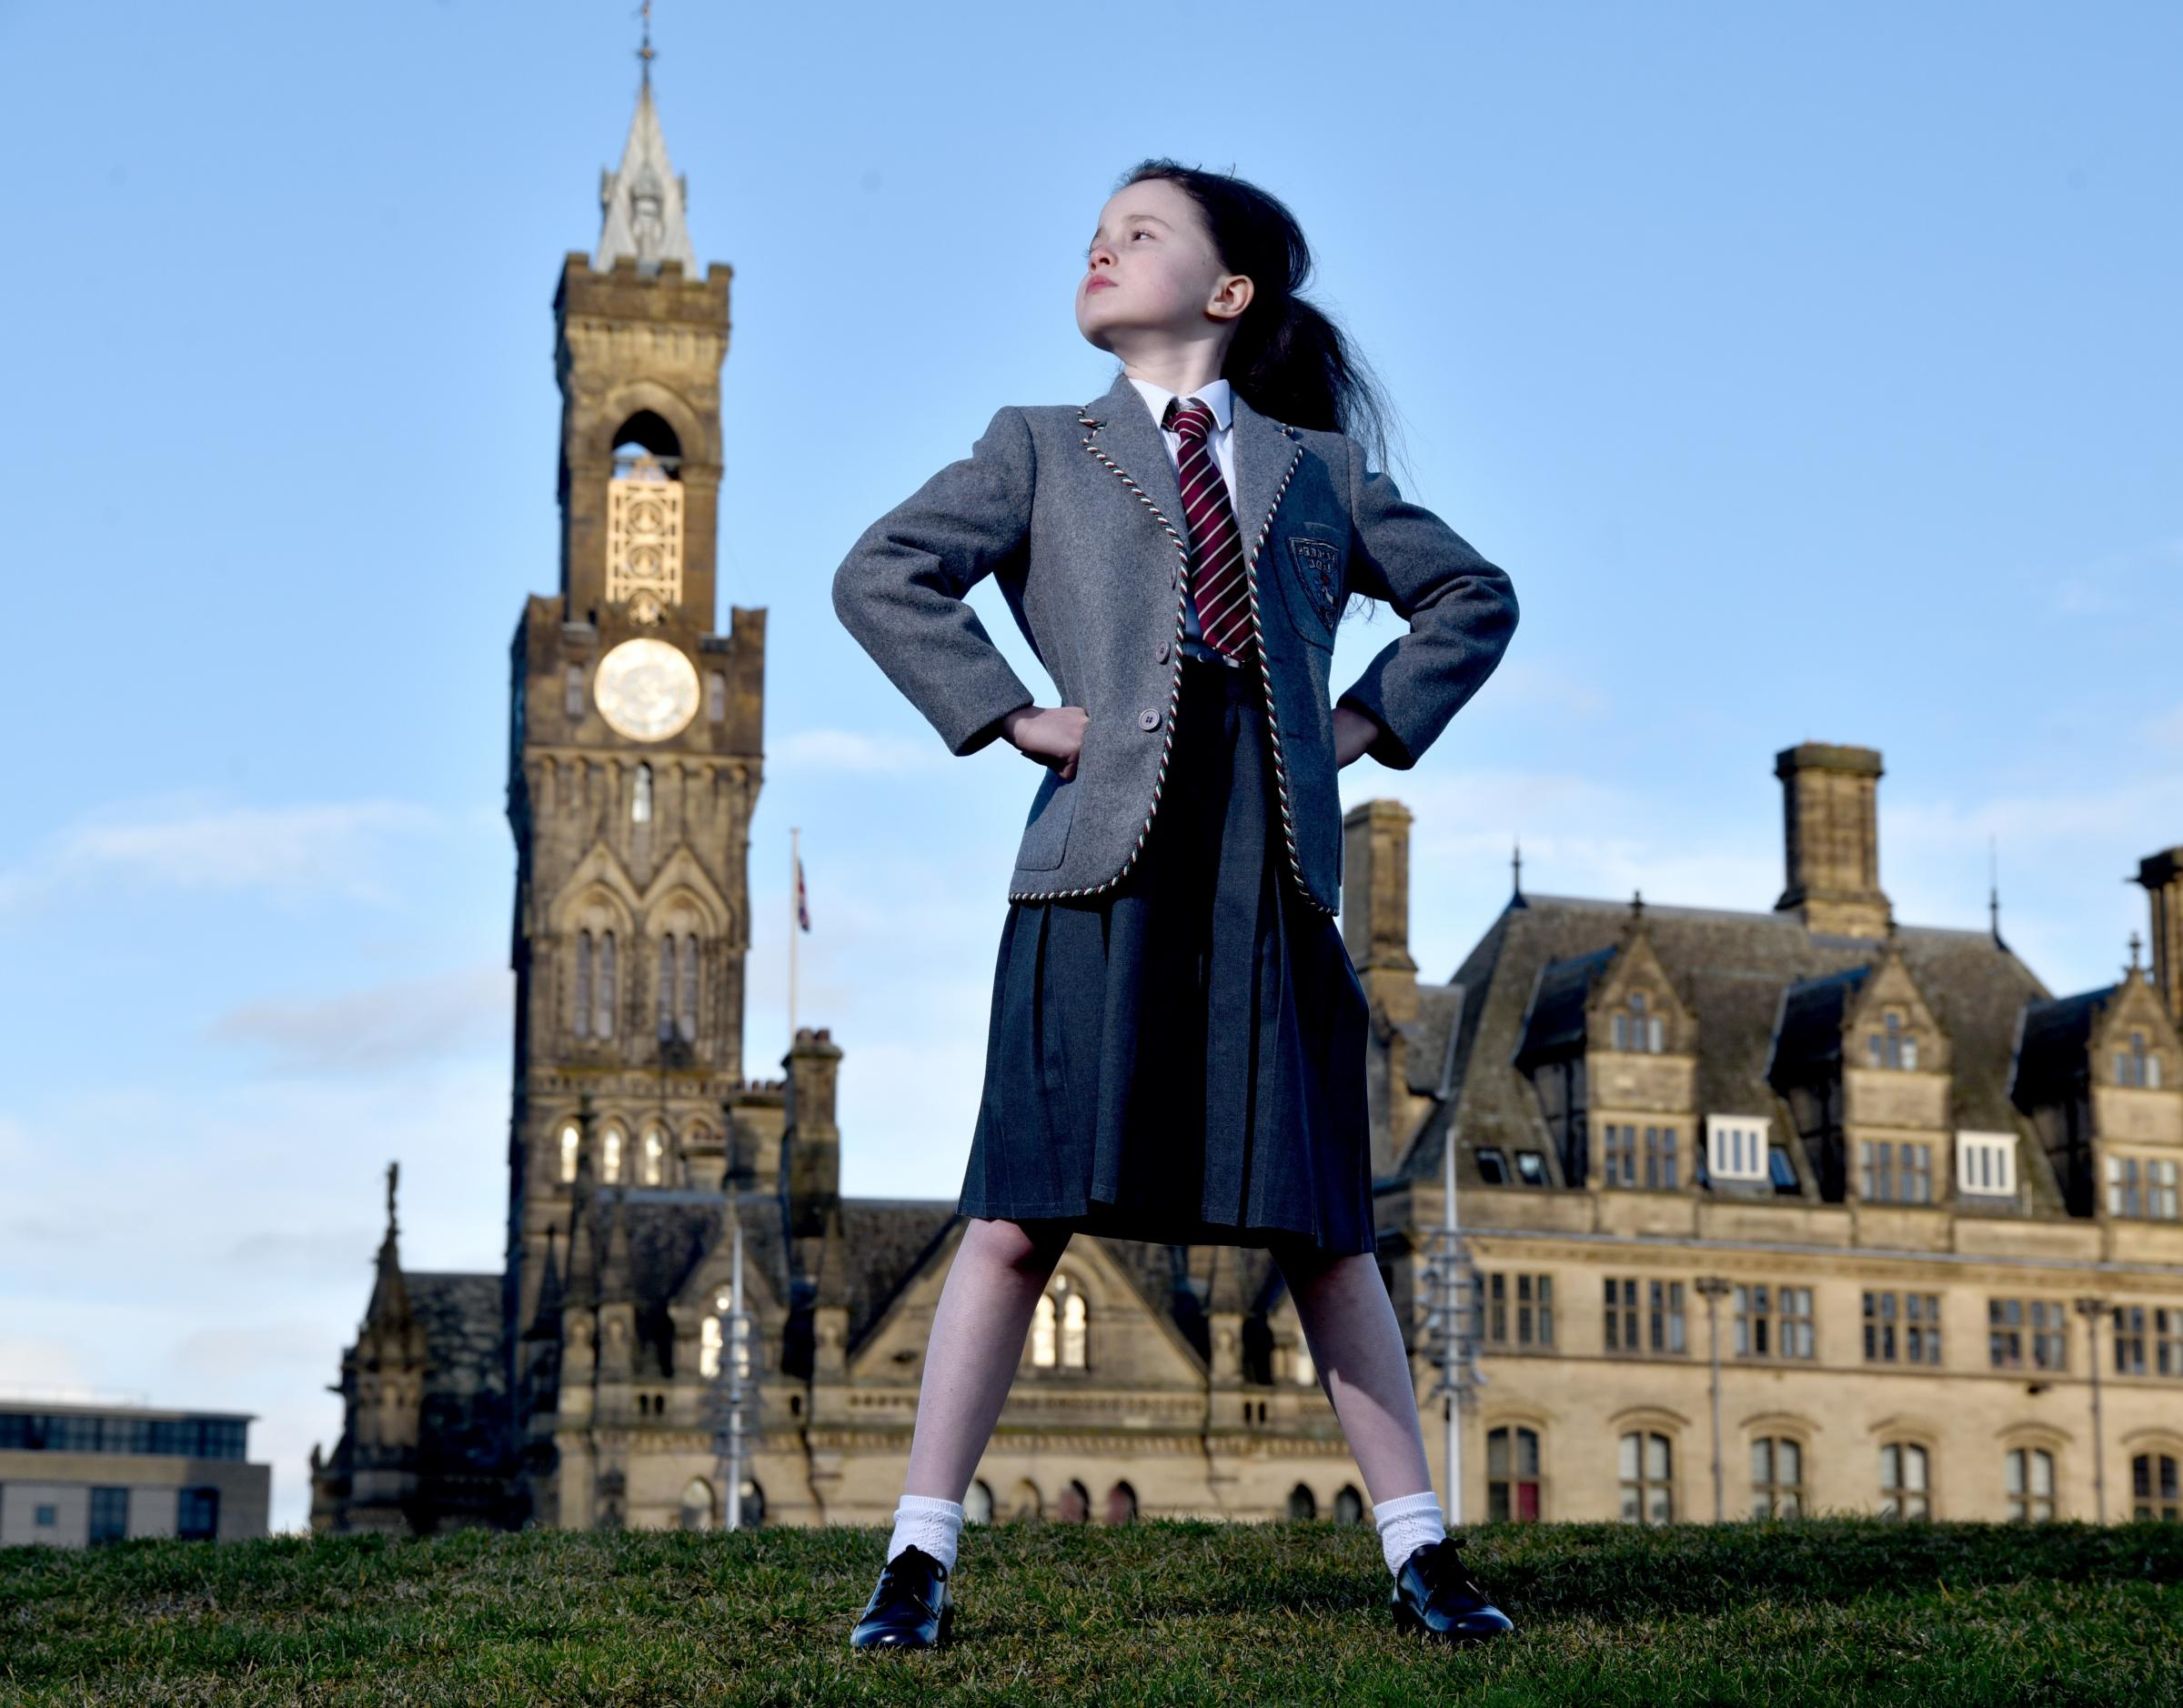 Sophia Ally, one of four young actresses sharing the role of Matilda the Musical, at the Alhambra for a month.